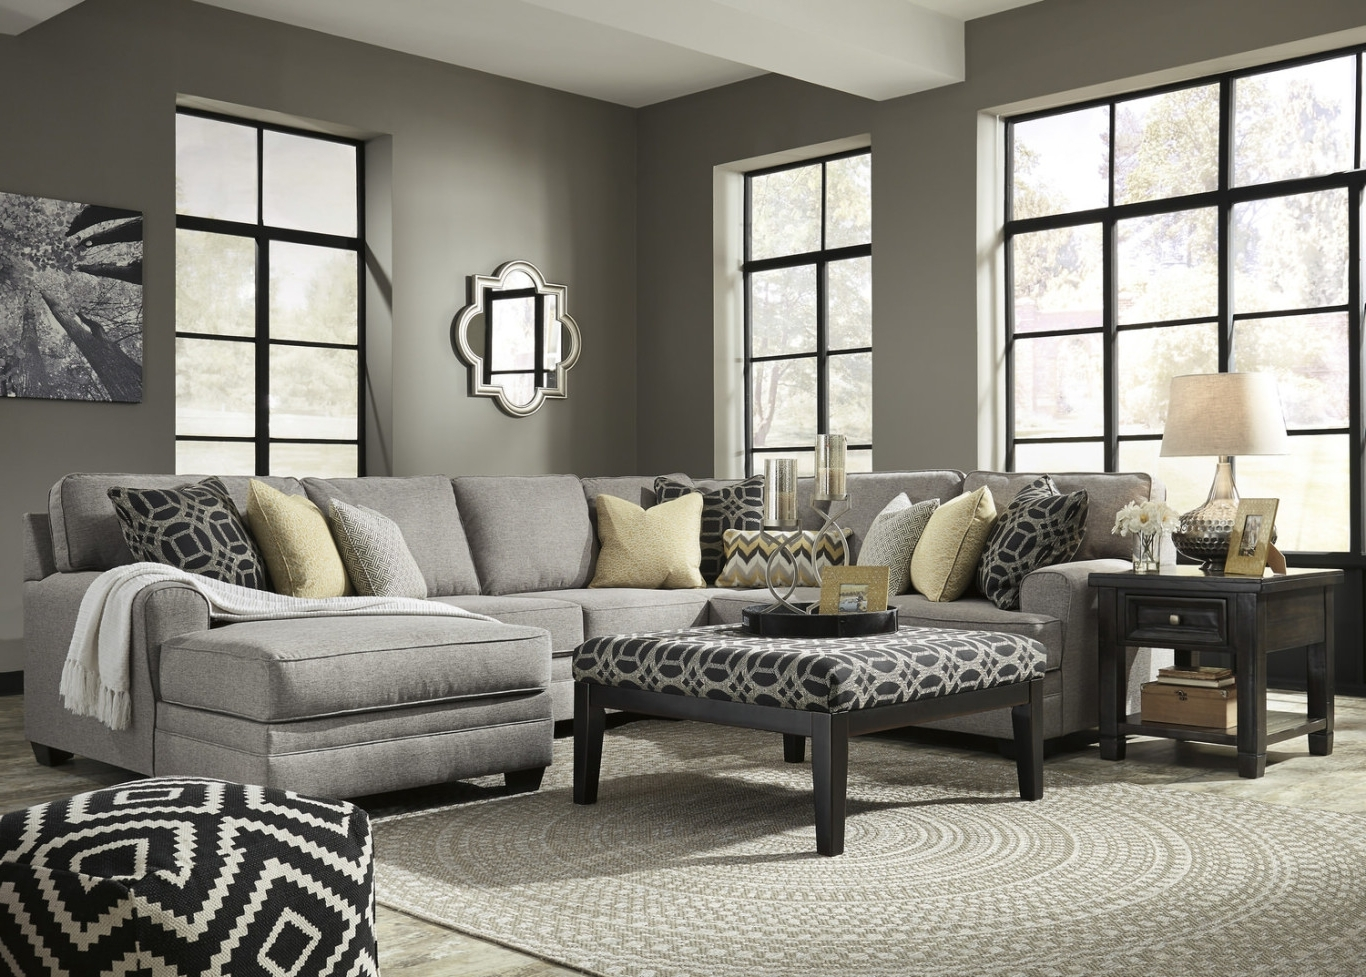 Popular Hom Furniture St Cloud Mn Intended For St Cloud Mn Sectional Sofas (View 9 of 15)